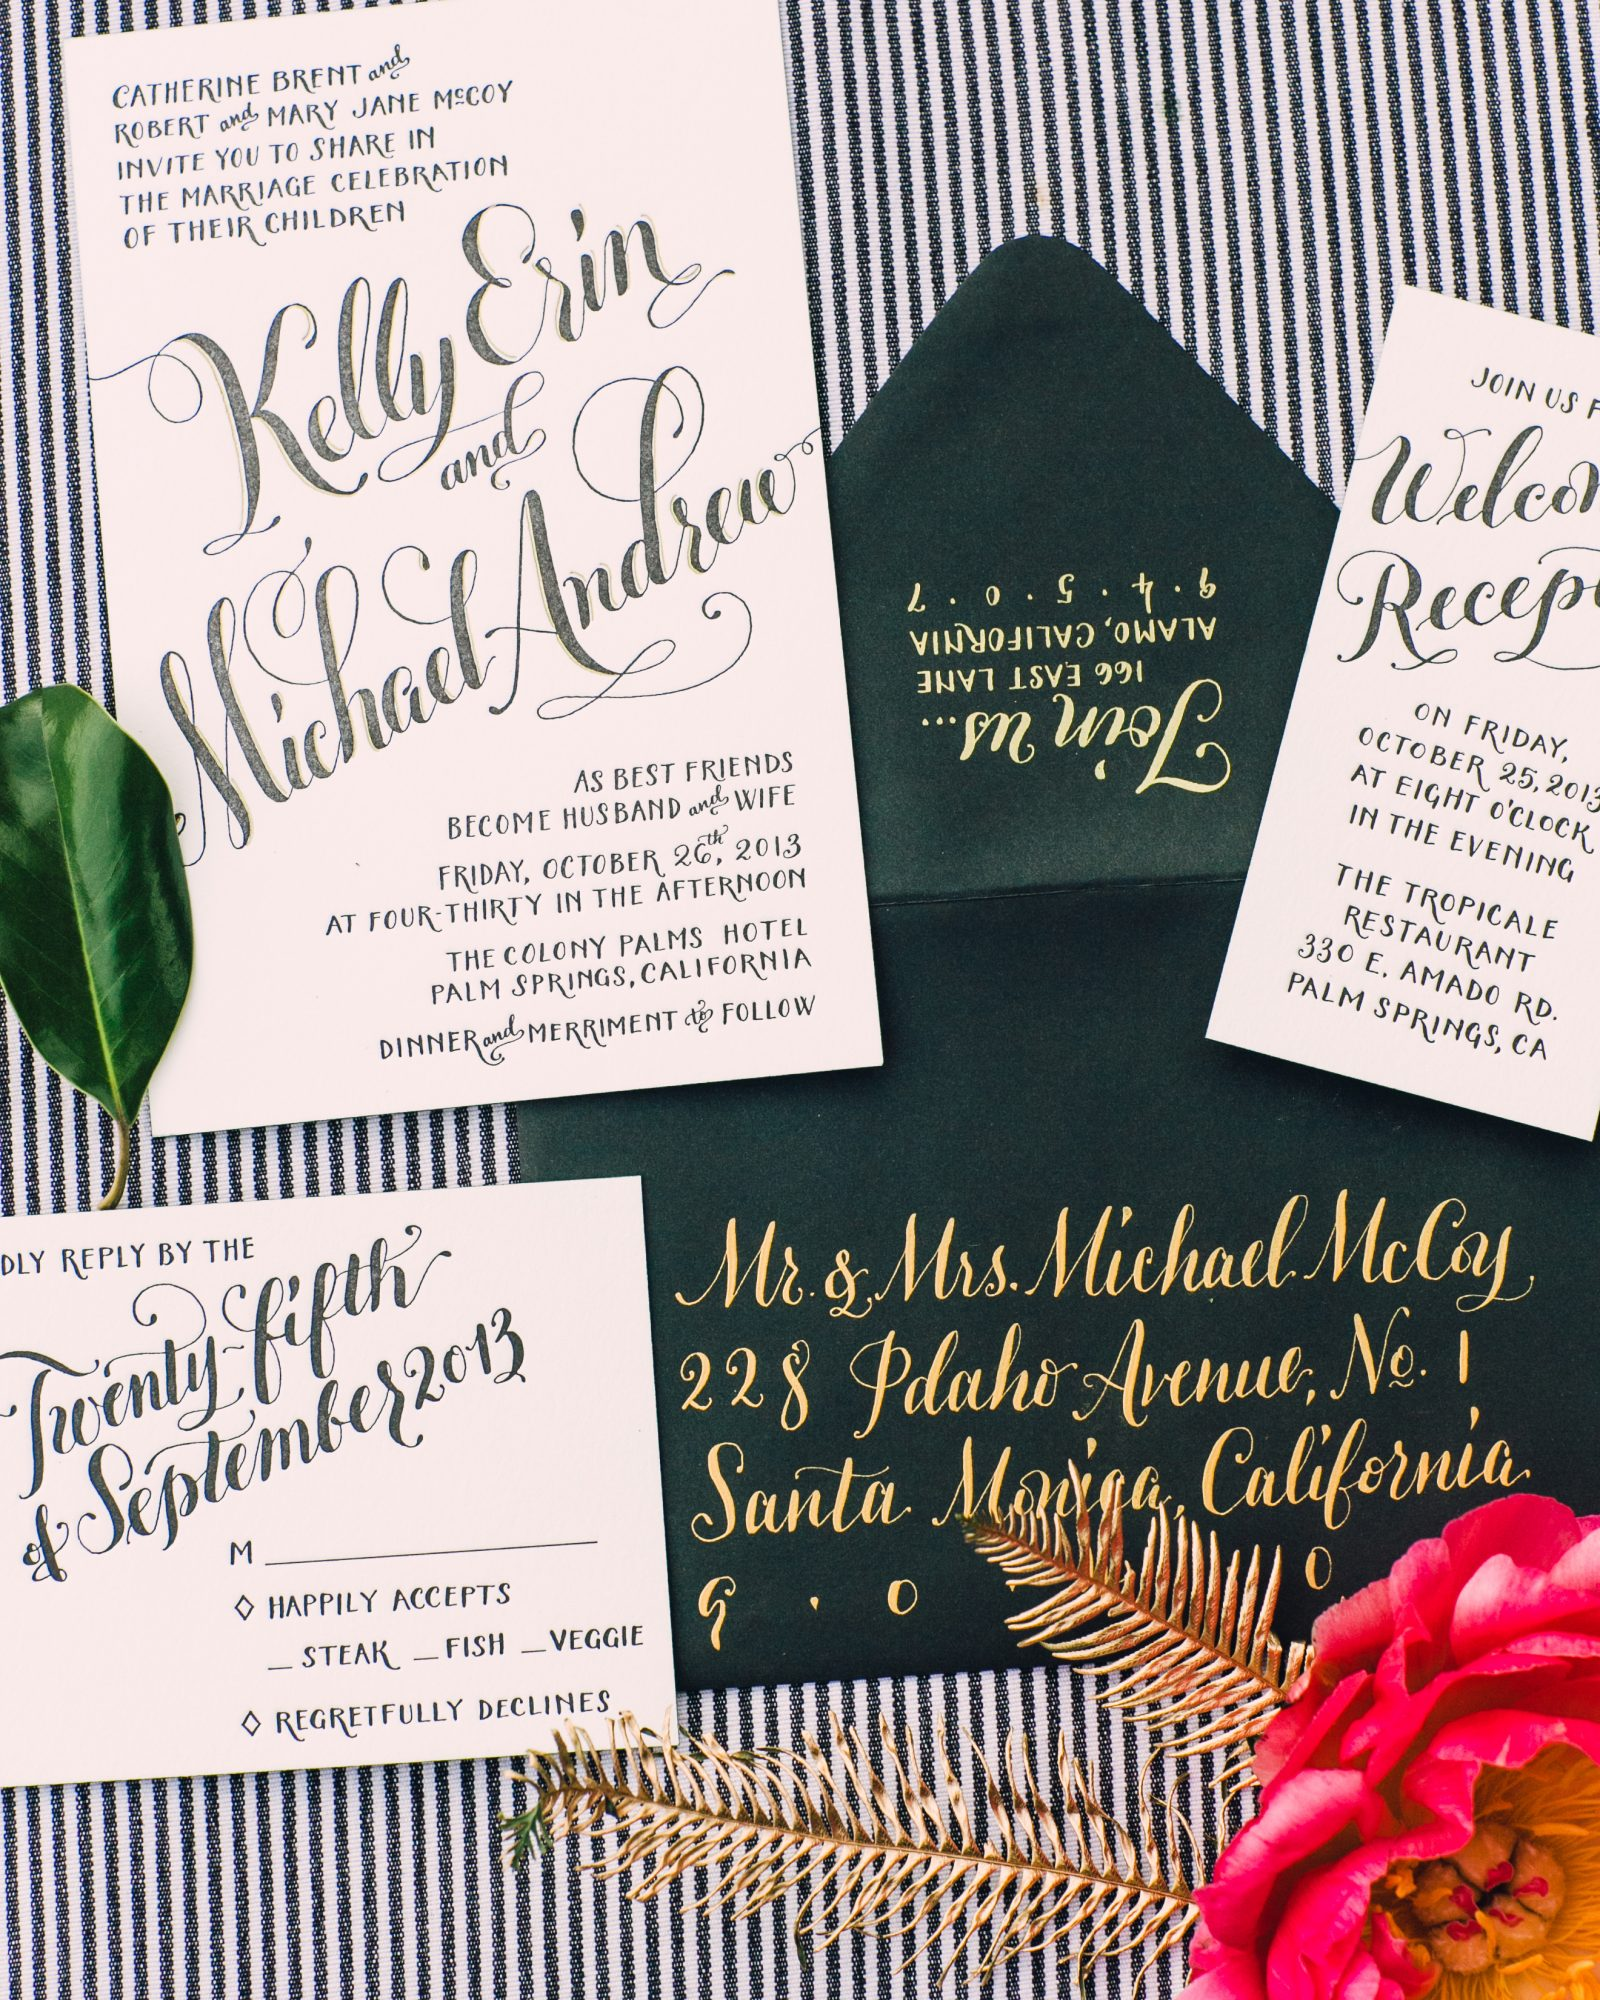 kelly_mike-wedding-invite-0514.jpg